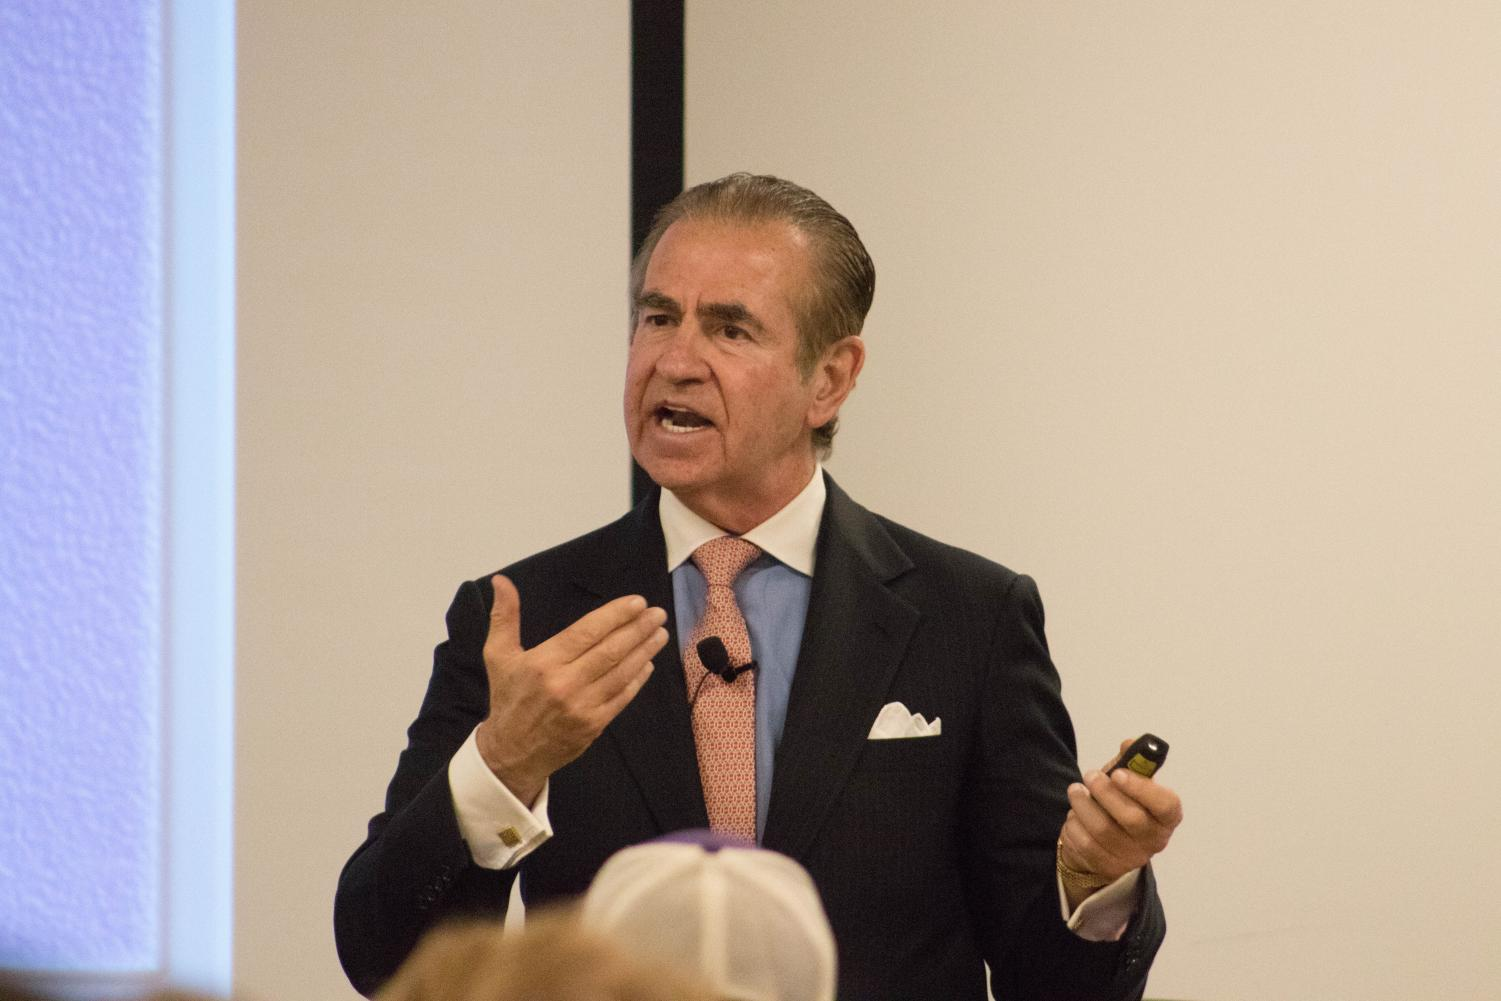 Public relations professional Fraser Seitel visited UNI this Tuesday to talk about PR in the era of nationalism.